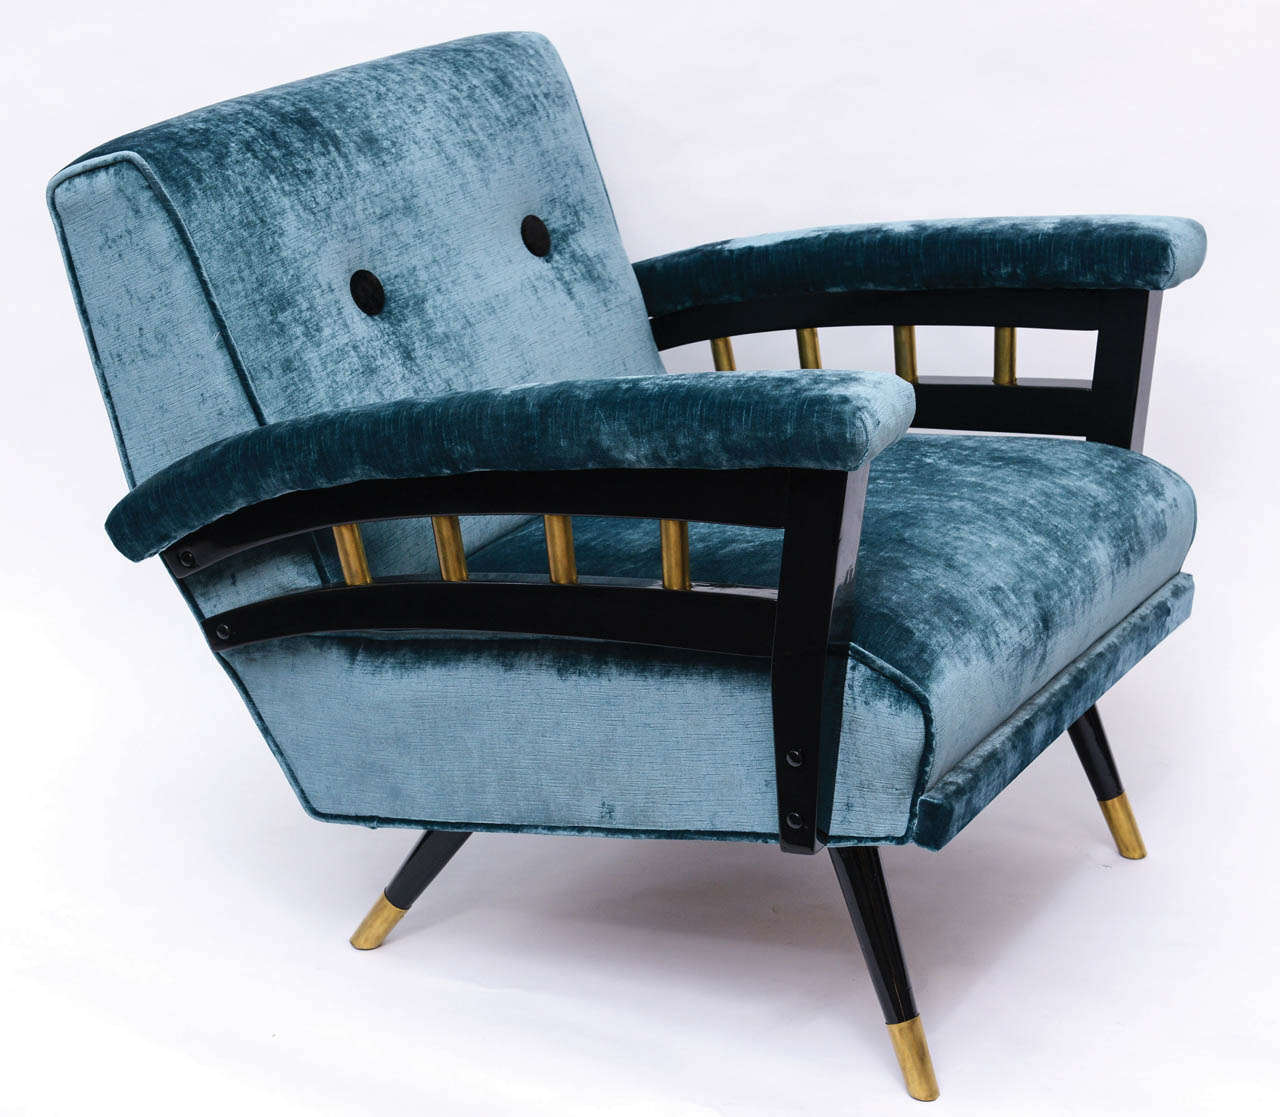 deer antler rocking chair square banquet covers stunning mid century blue velvet and black lacquer